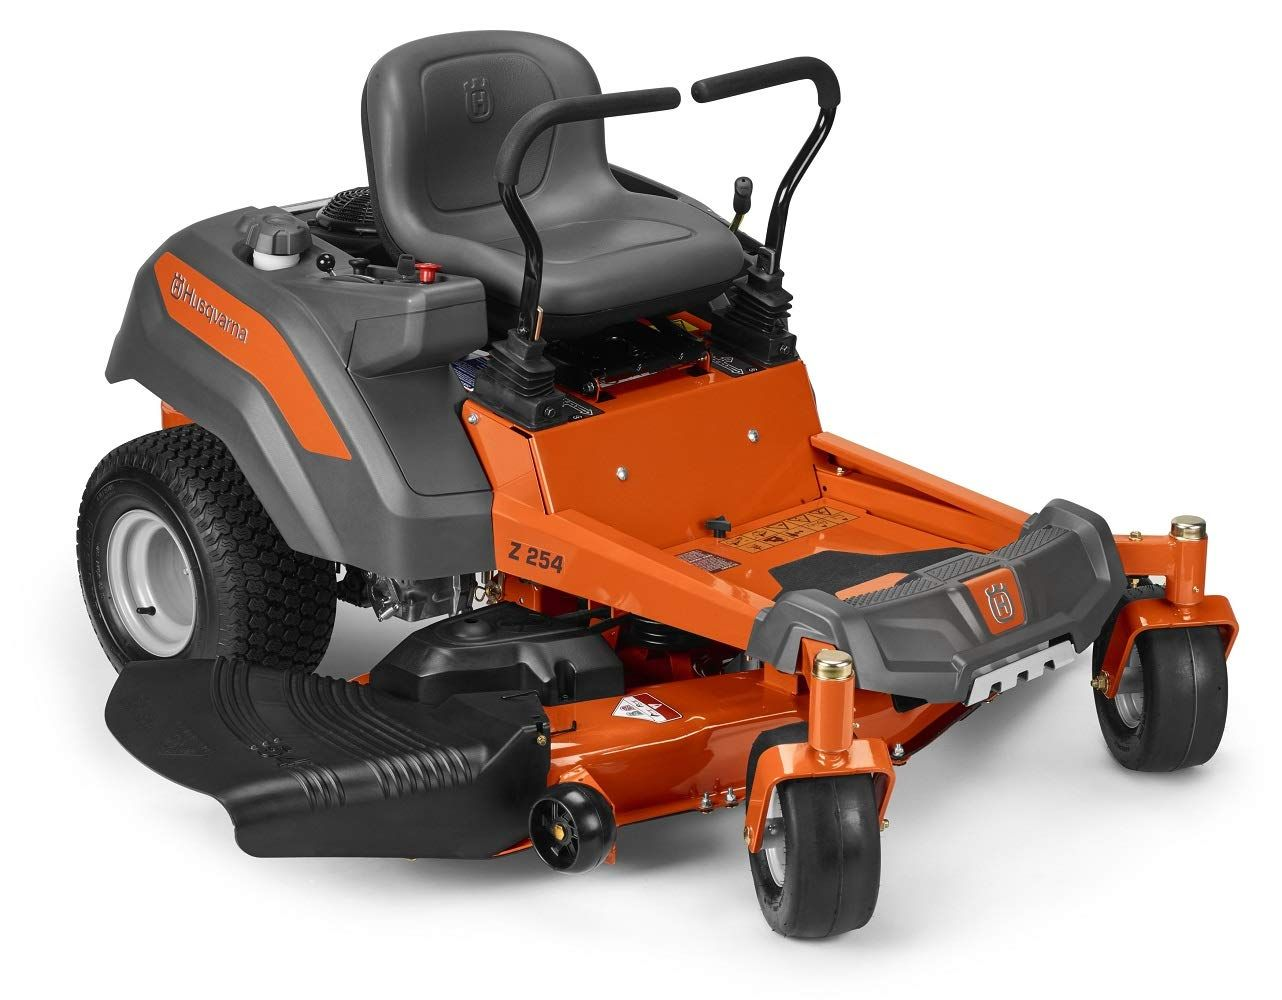 Riding Lawn Mowers: The Best Of 2019